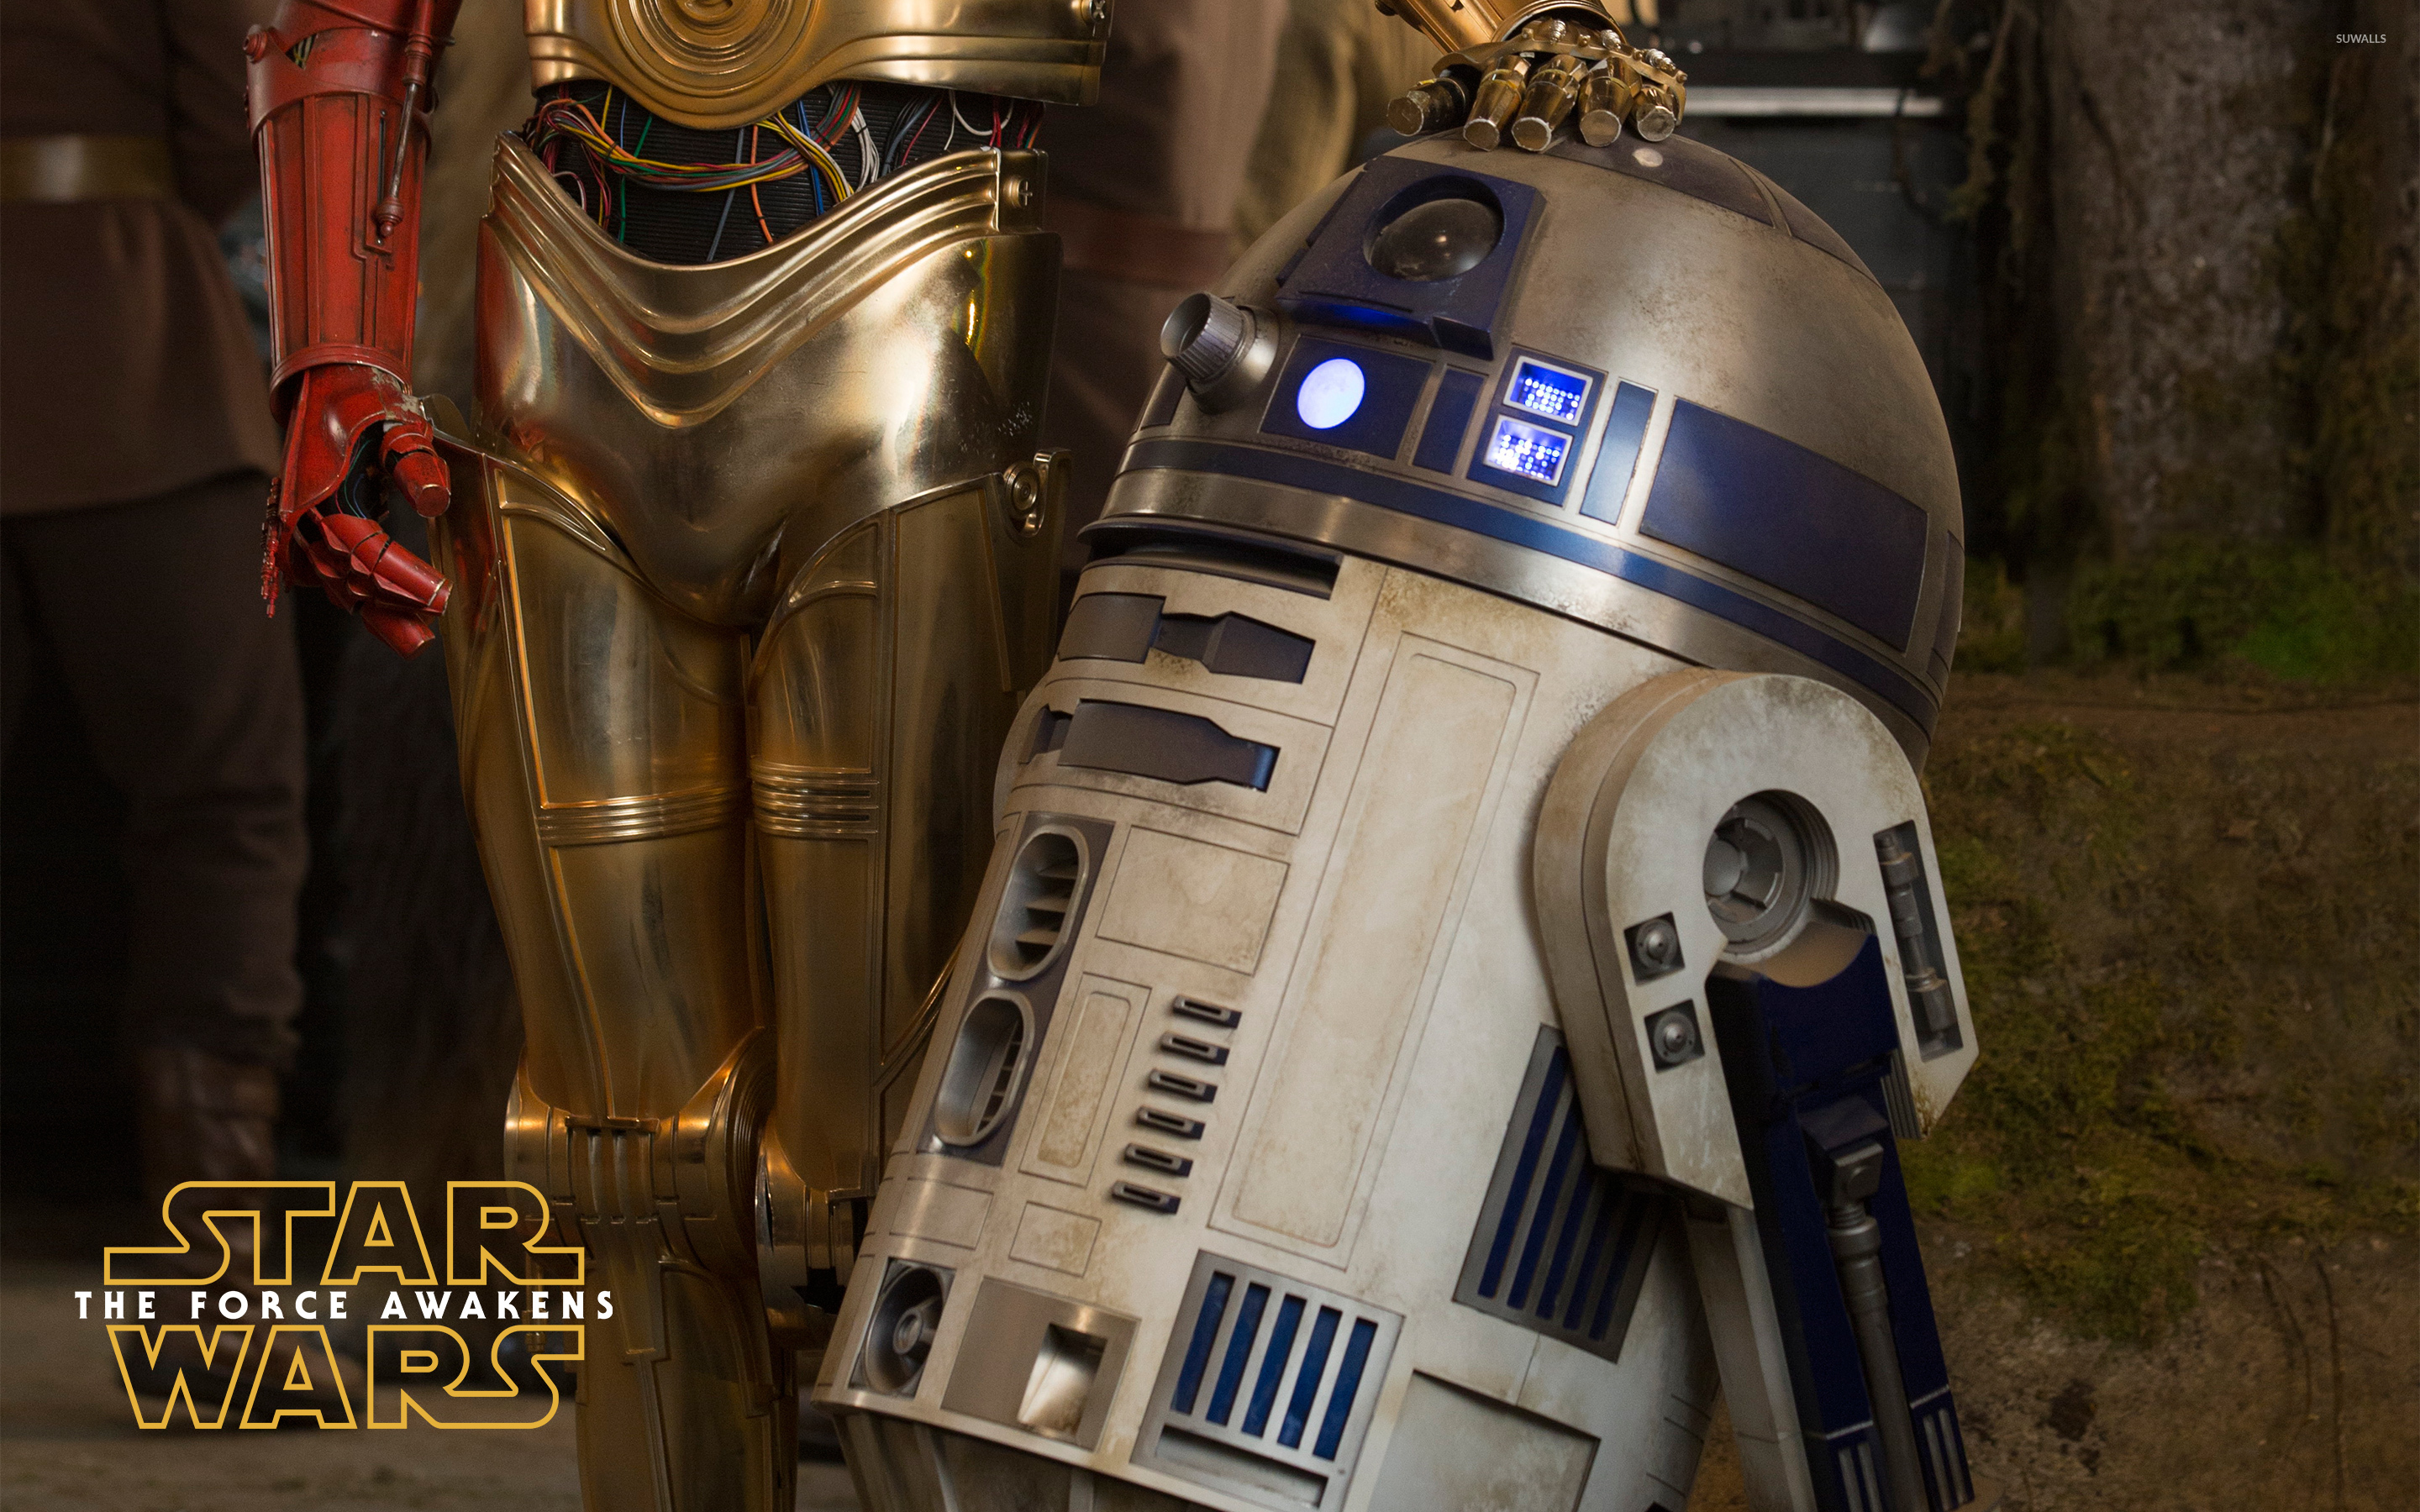 Dirty Harry Quotes Wallpaper R2 D2 In Star Wars The Force Awakens Wallpaper Movie